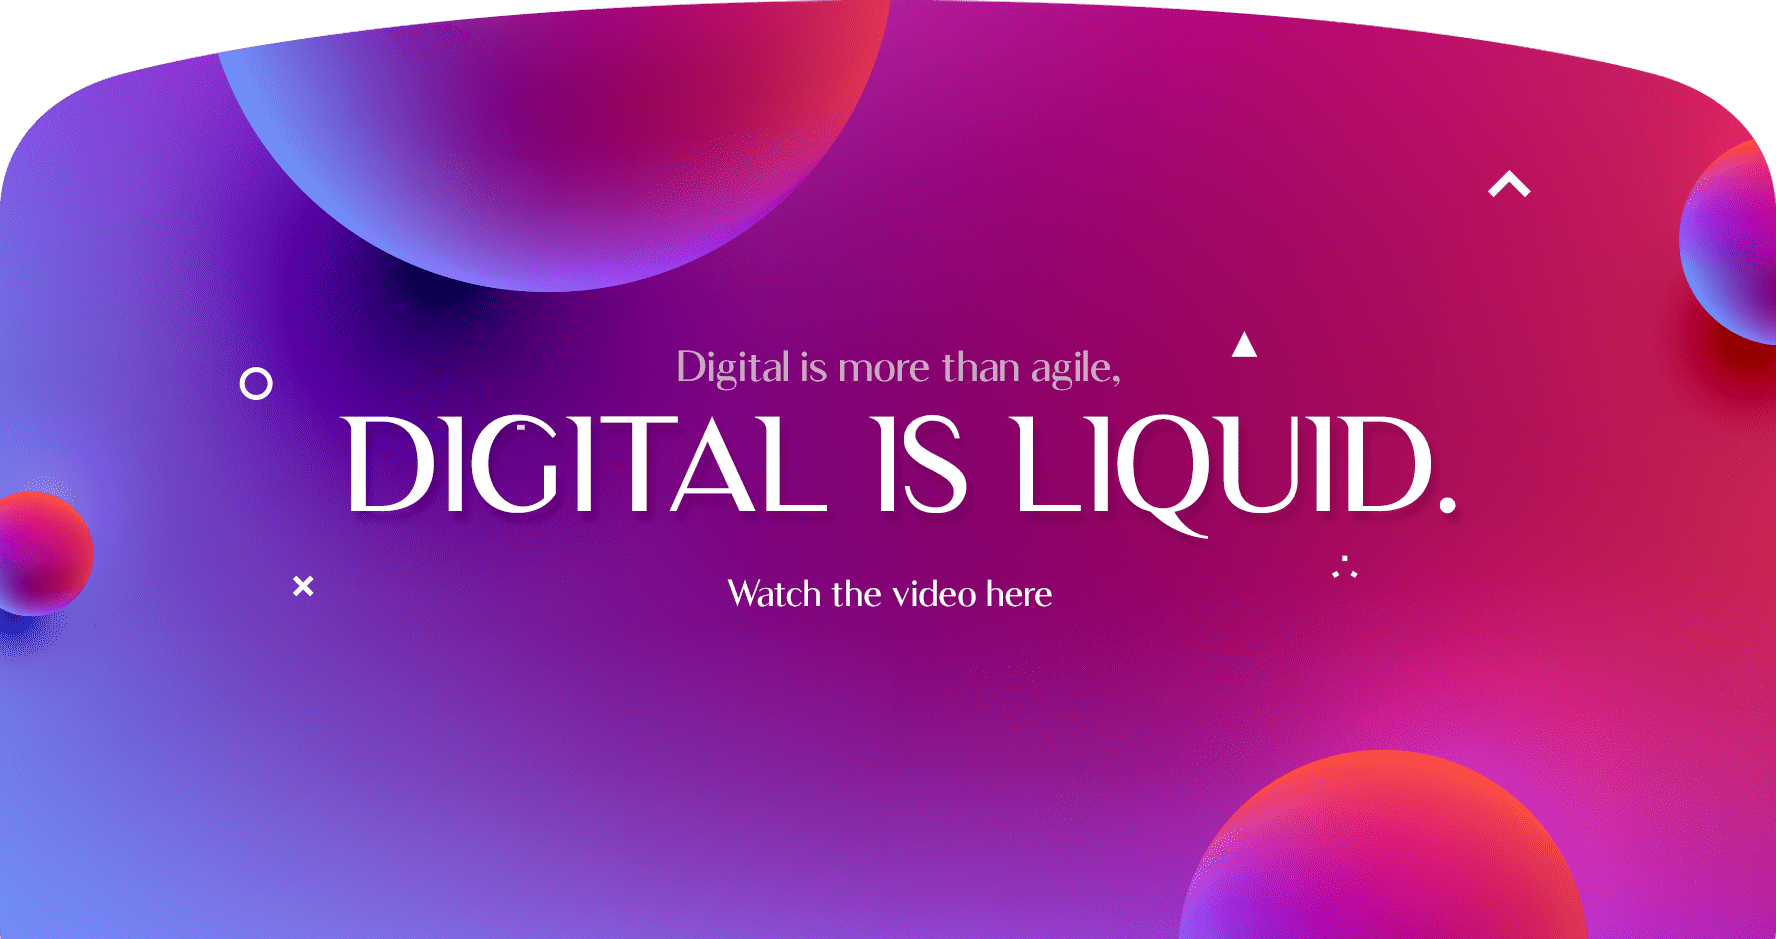 Digital is more than agile, digital is liquid